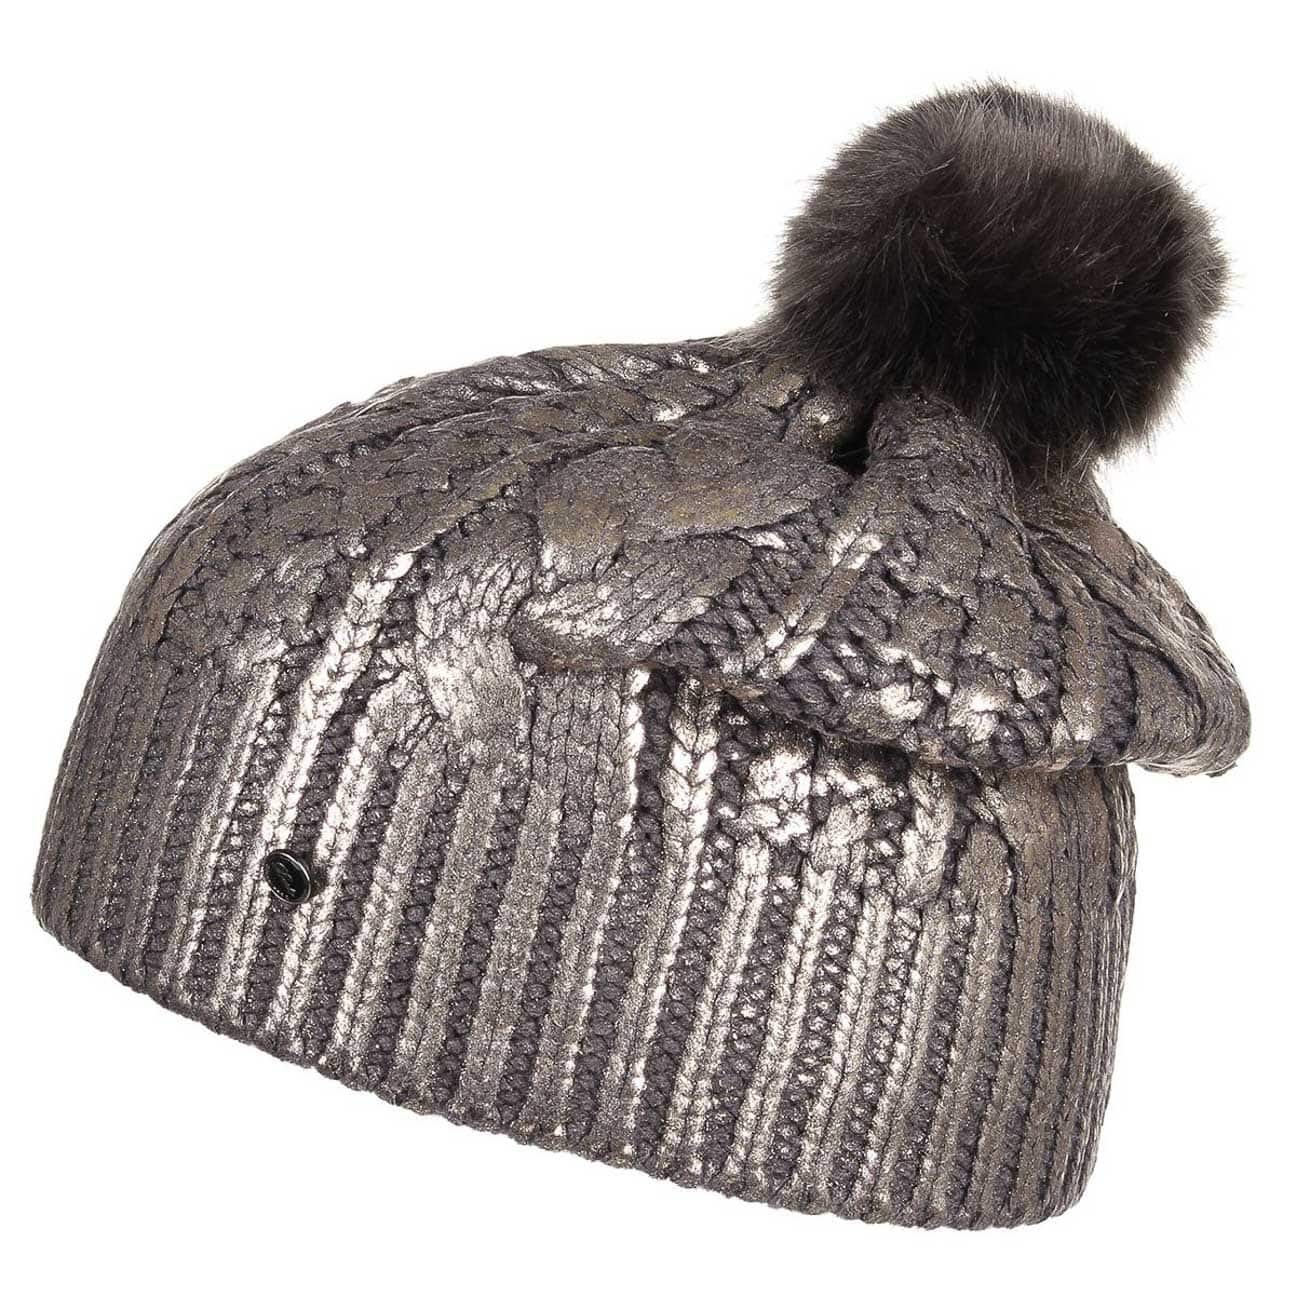 20244a3821f barts womens beanie with soft faux fur bobble good quality 42a40 ...